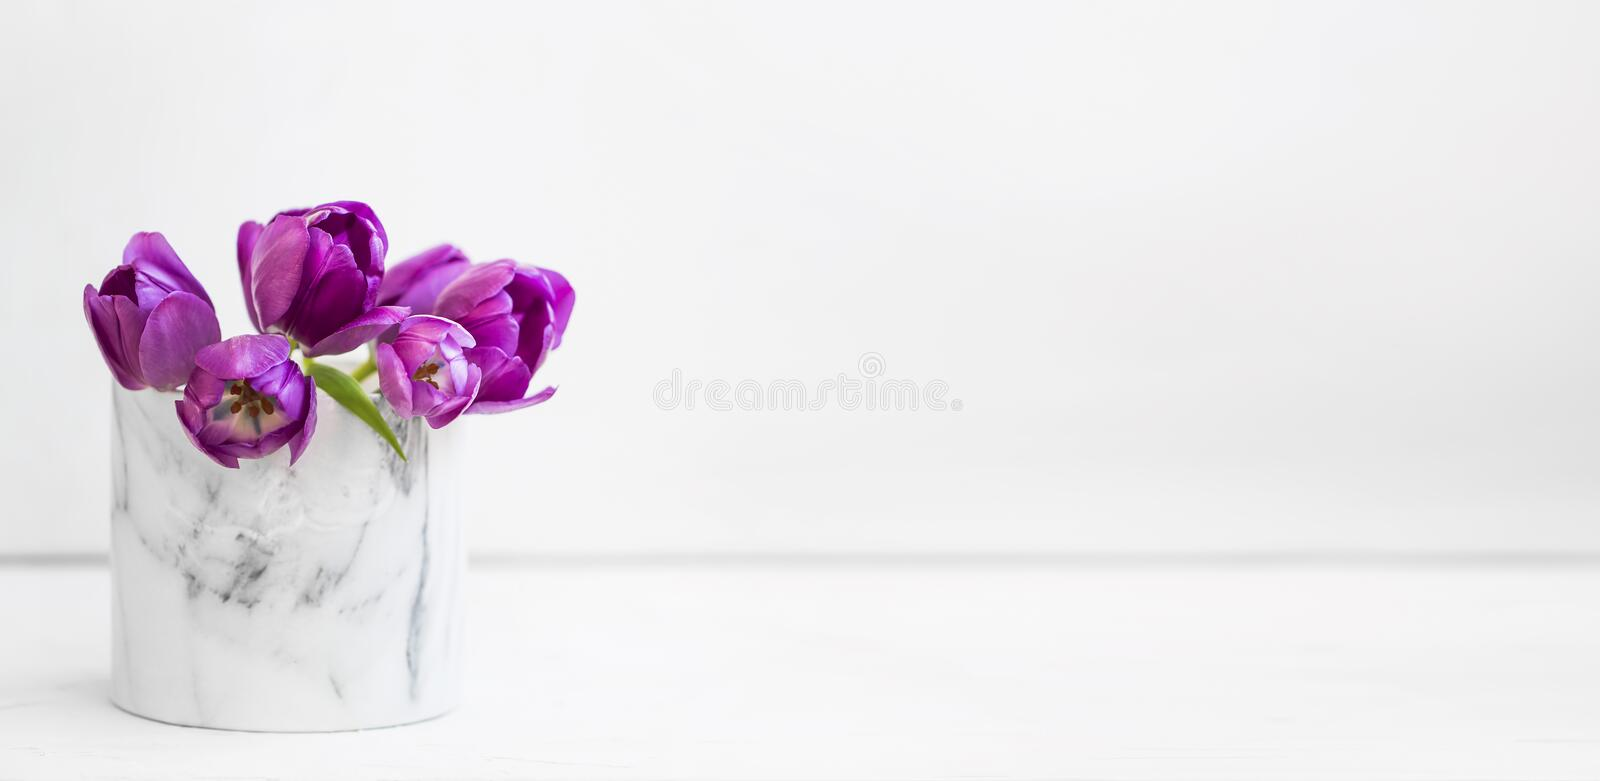 Spring purple tulips bouquet in a vase on white background, spring flowers bouquet royalty free stock images